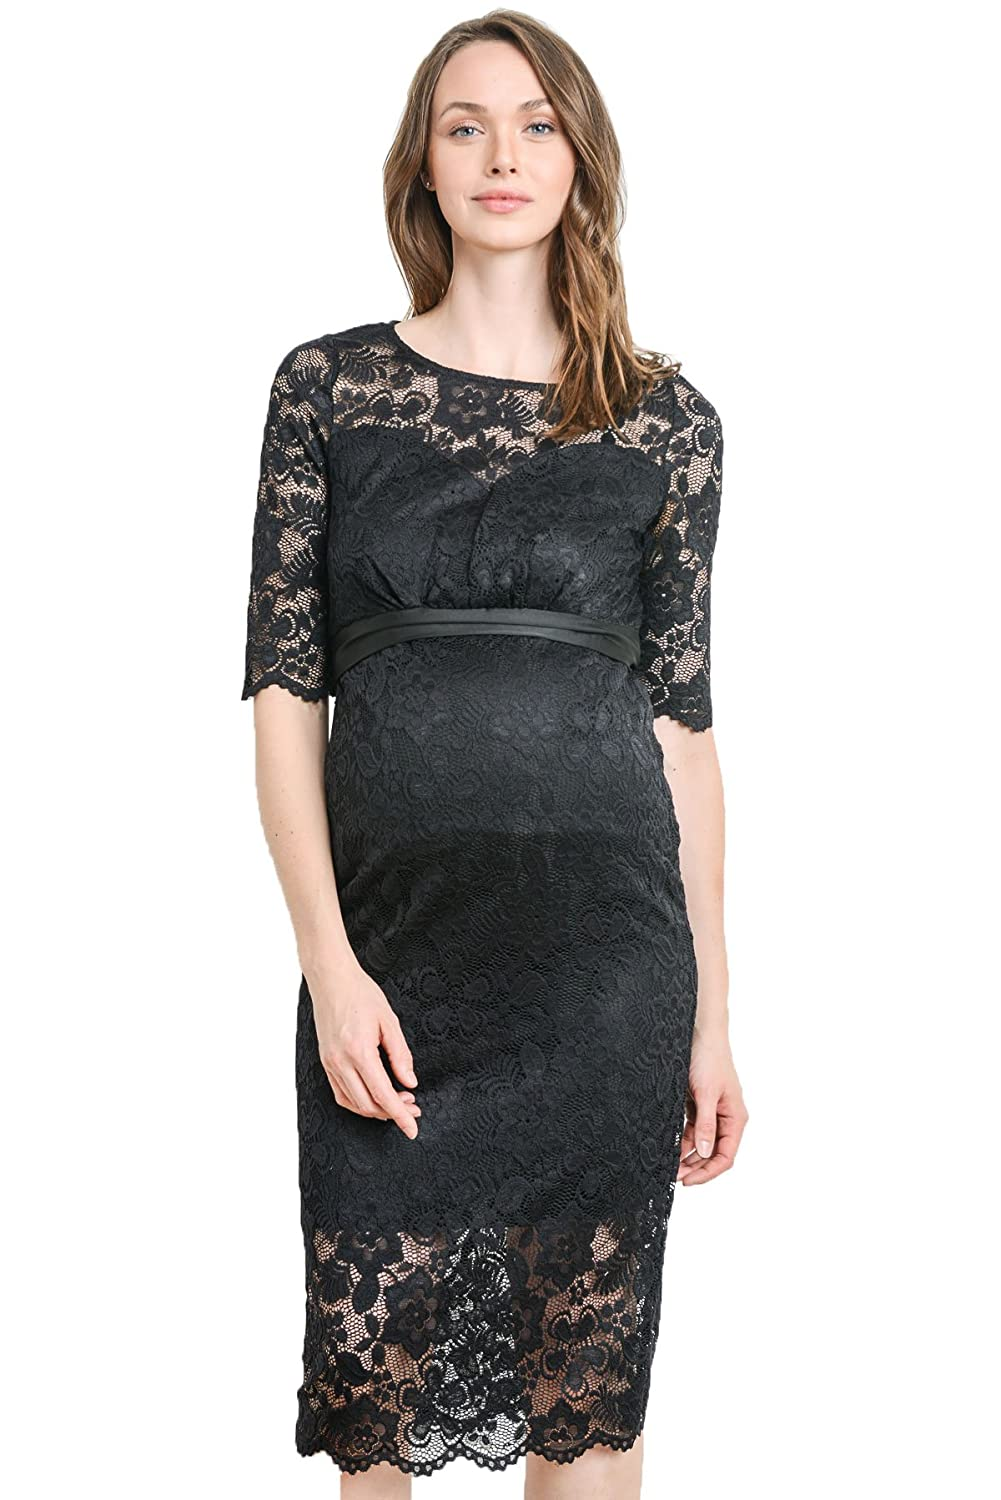 Hello miz womens baby shower floral lace maternity dress at hello miz womens baby shower floral lace maternity dress at amazon womens clothing store ombrellifo Images